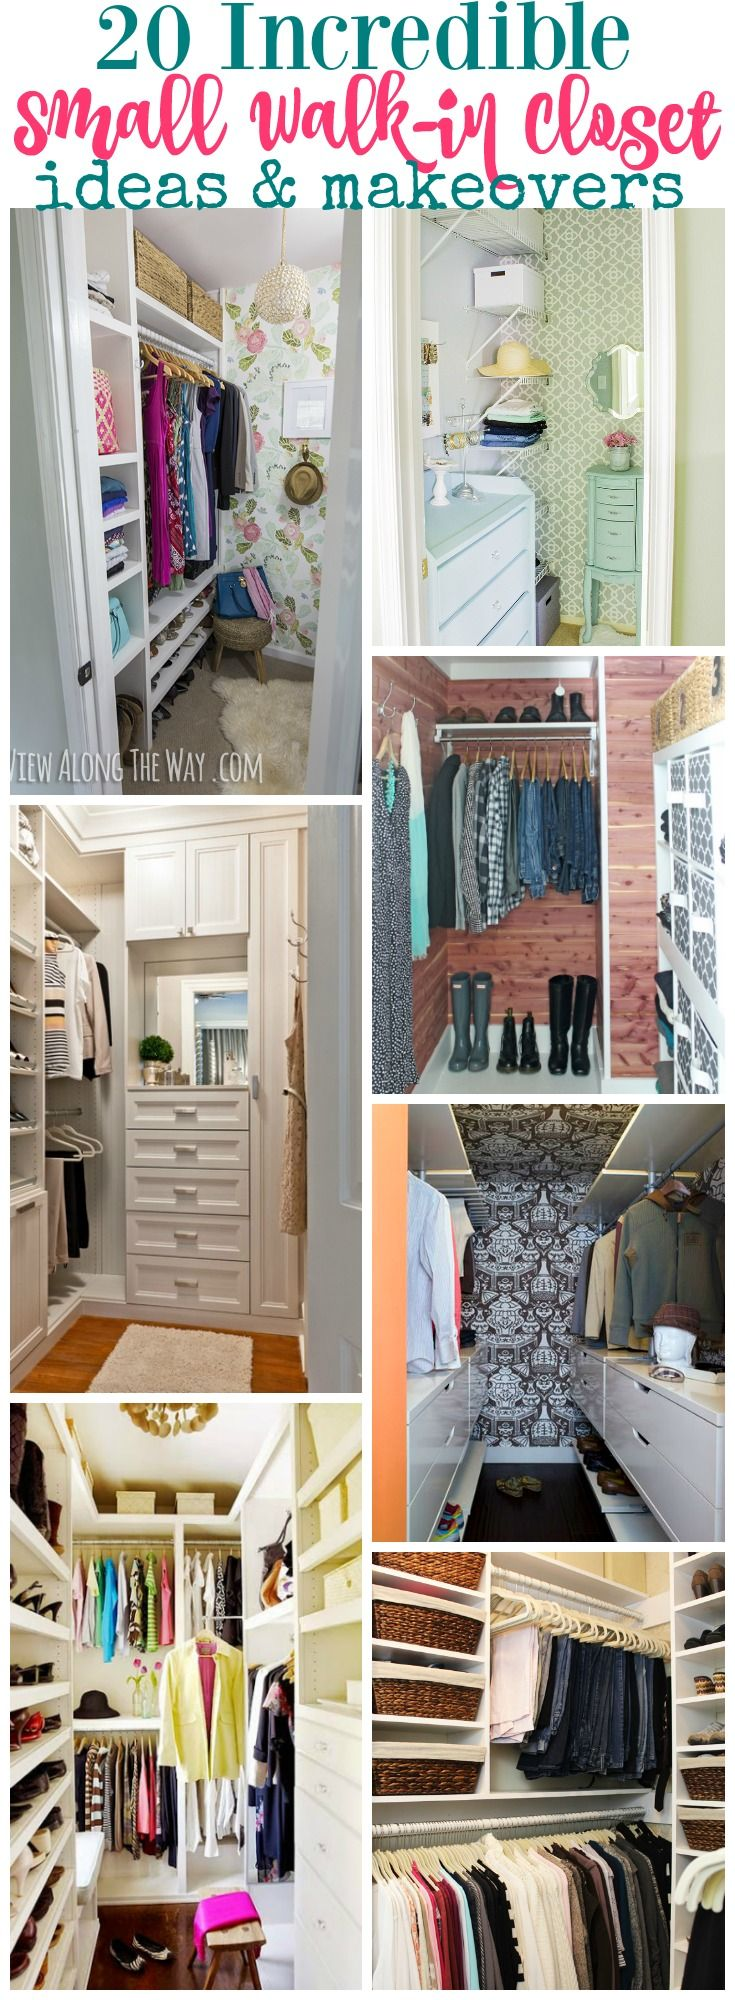 get-inspired-to-whip-your-closet-into-shape-with-these-20-incredible-small-walk-in-closet-ideas-and-makeovers